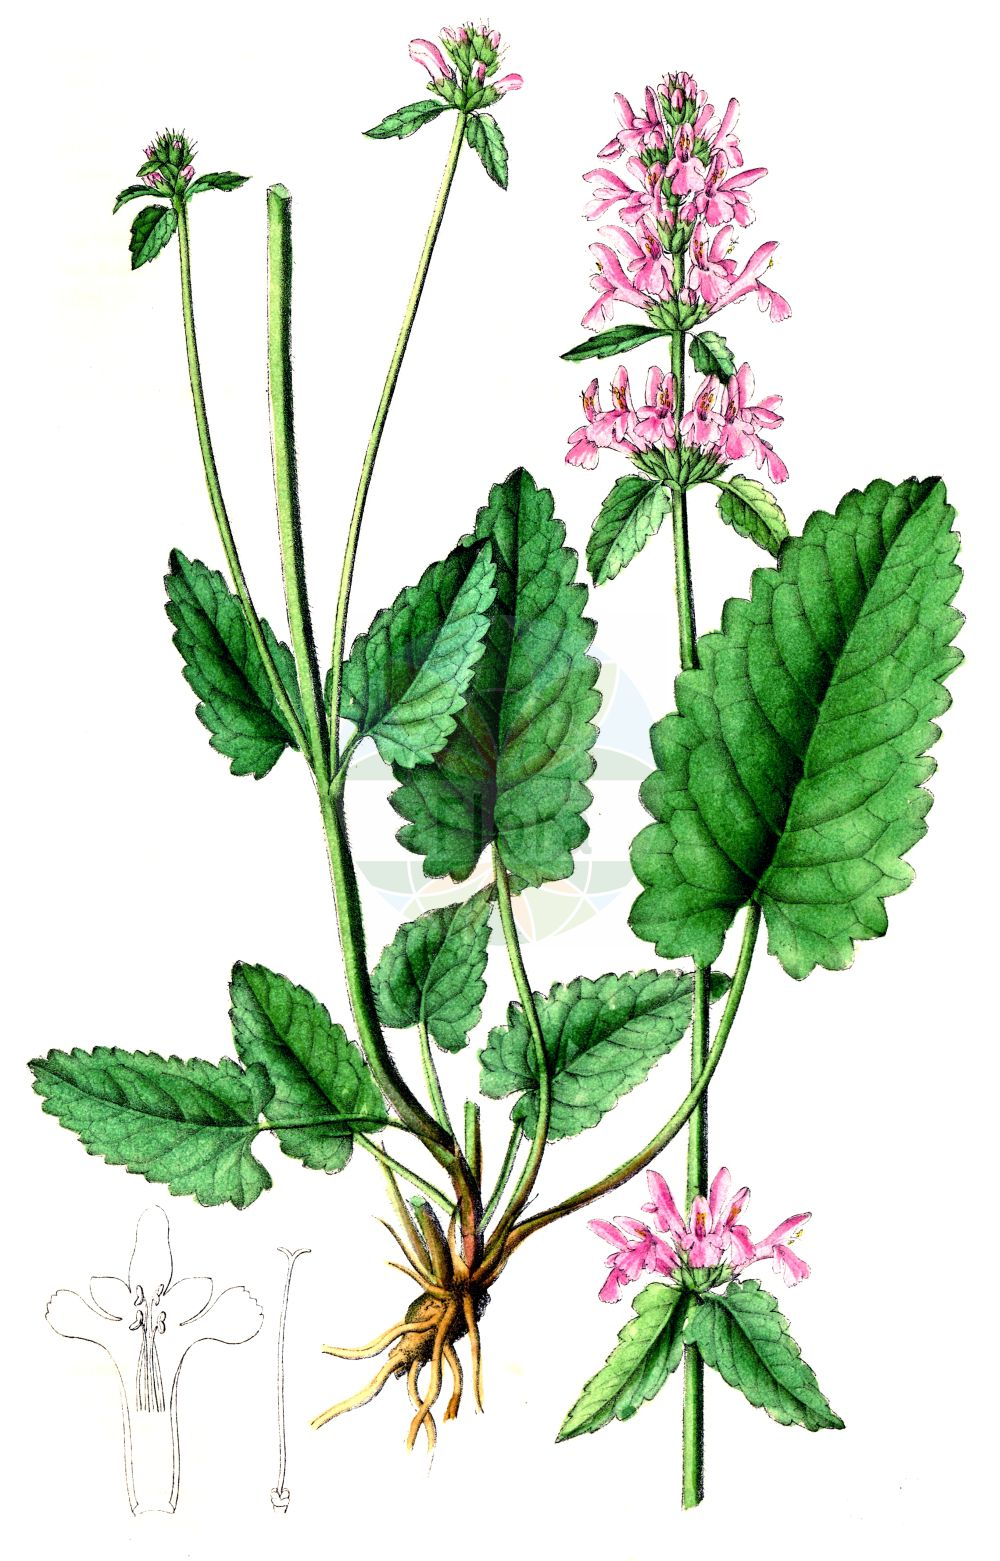 Historische Abbildung von Stachys officinalis subsp. officinalis (Heil-Ziest - Betony). Das Bild zeigt Blatt, Bluete, Frucht und Same. ---- Historical Drawing of Stachys officinalis subsp. officinalis (Heil-Ziest - Betony).The image is showing leaf, flower, fruit and seed.(Stachys officinalis subsp. officinalis,Heil-Ziest,Betony,Stachys stricta,Heil-Ziest,Betony,Stachys,Ziest,Hedgenettle,Lamiaceae,Lippenbluetengewaechse,Lippenbluetler,Nettle family,Blatt,Bluete,Frucht,Same,leaf,flower,fruit,seed,Dietrich (1833-1844))